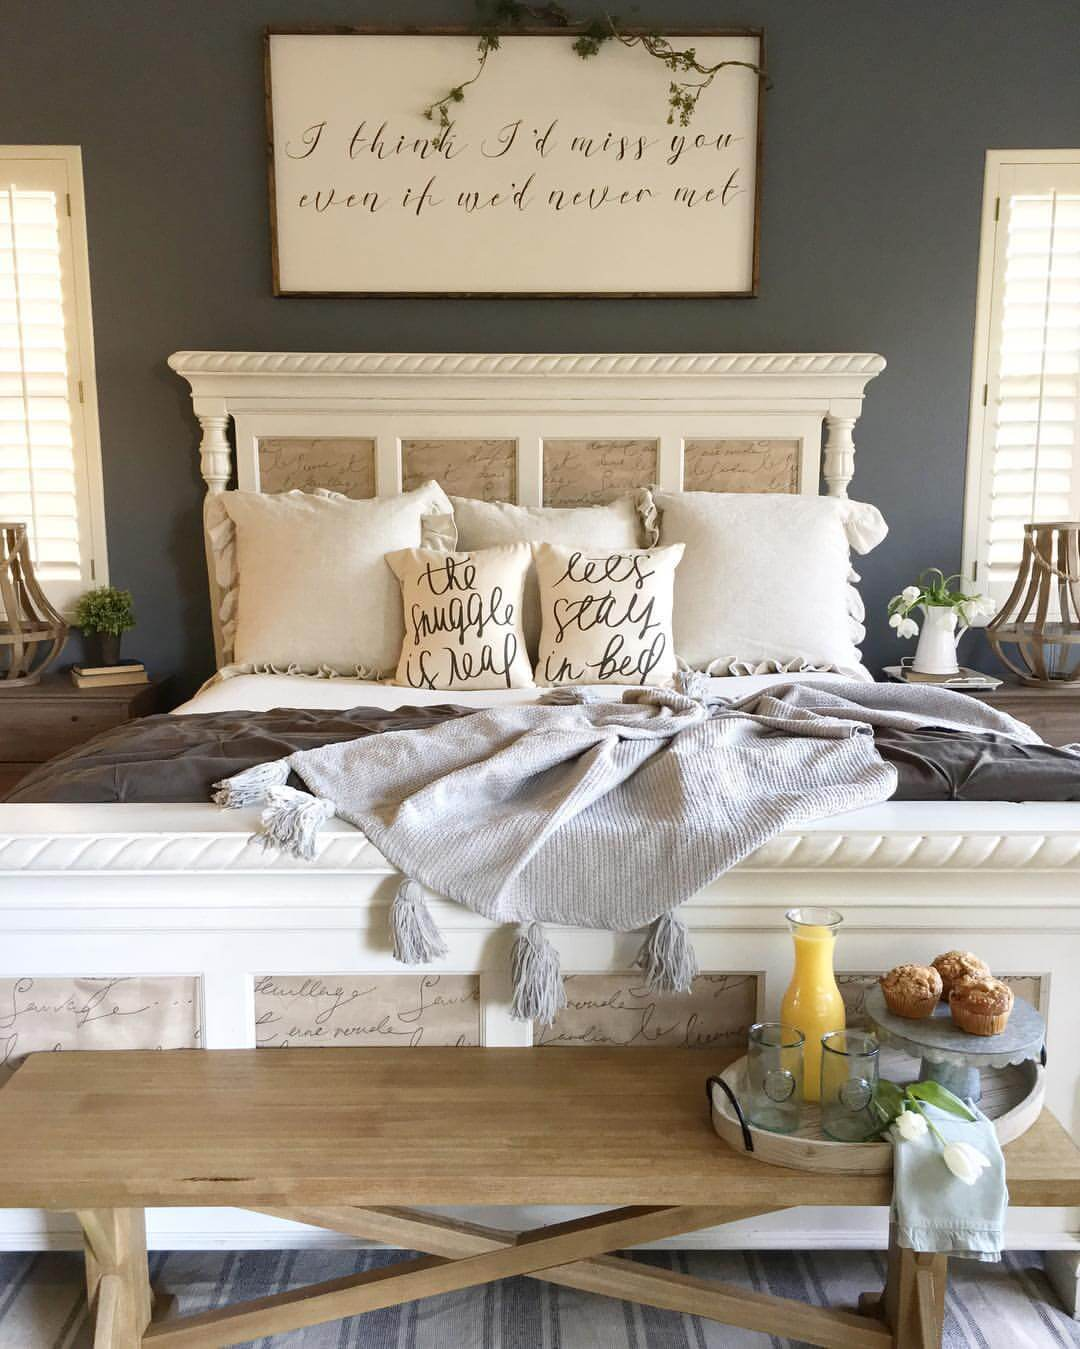 Bedroom Decorating Ideas: 39 Best Farmhouse Bedroom Design And Decor Ideas For 2019